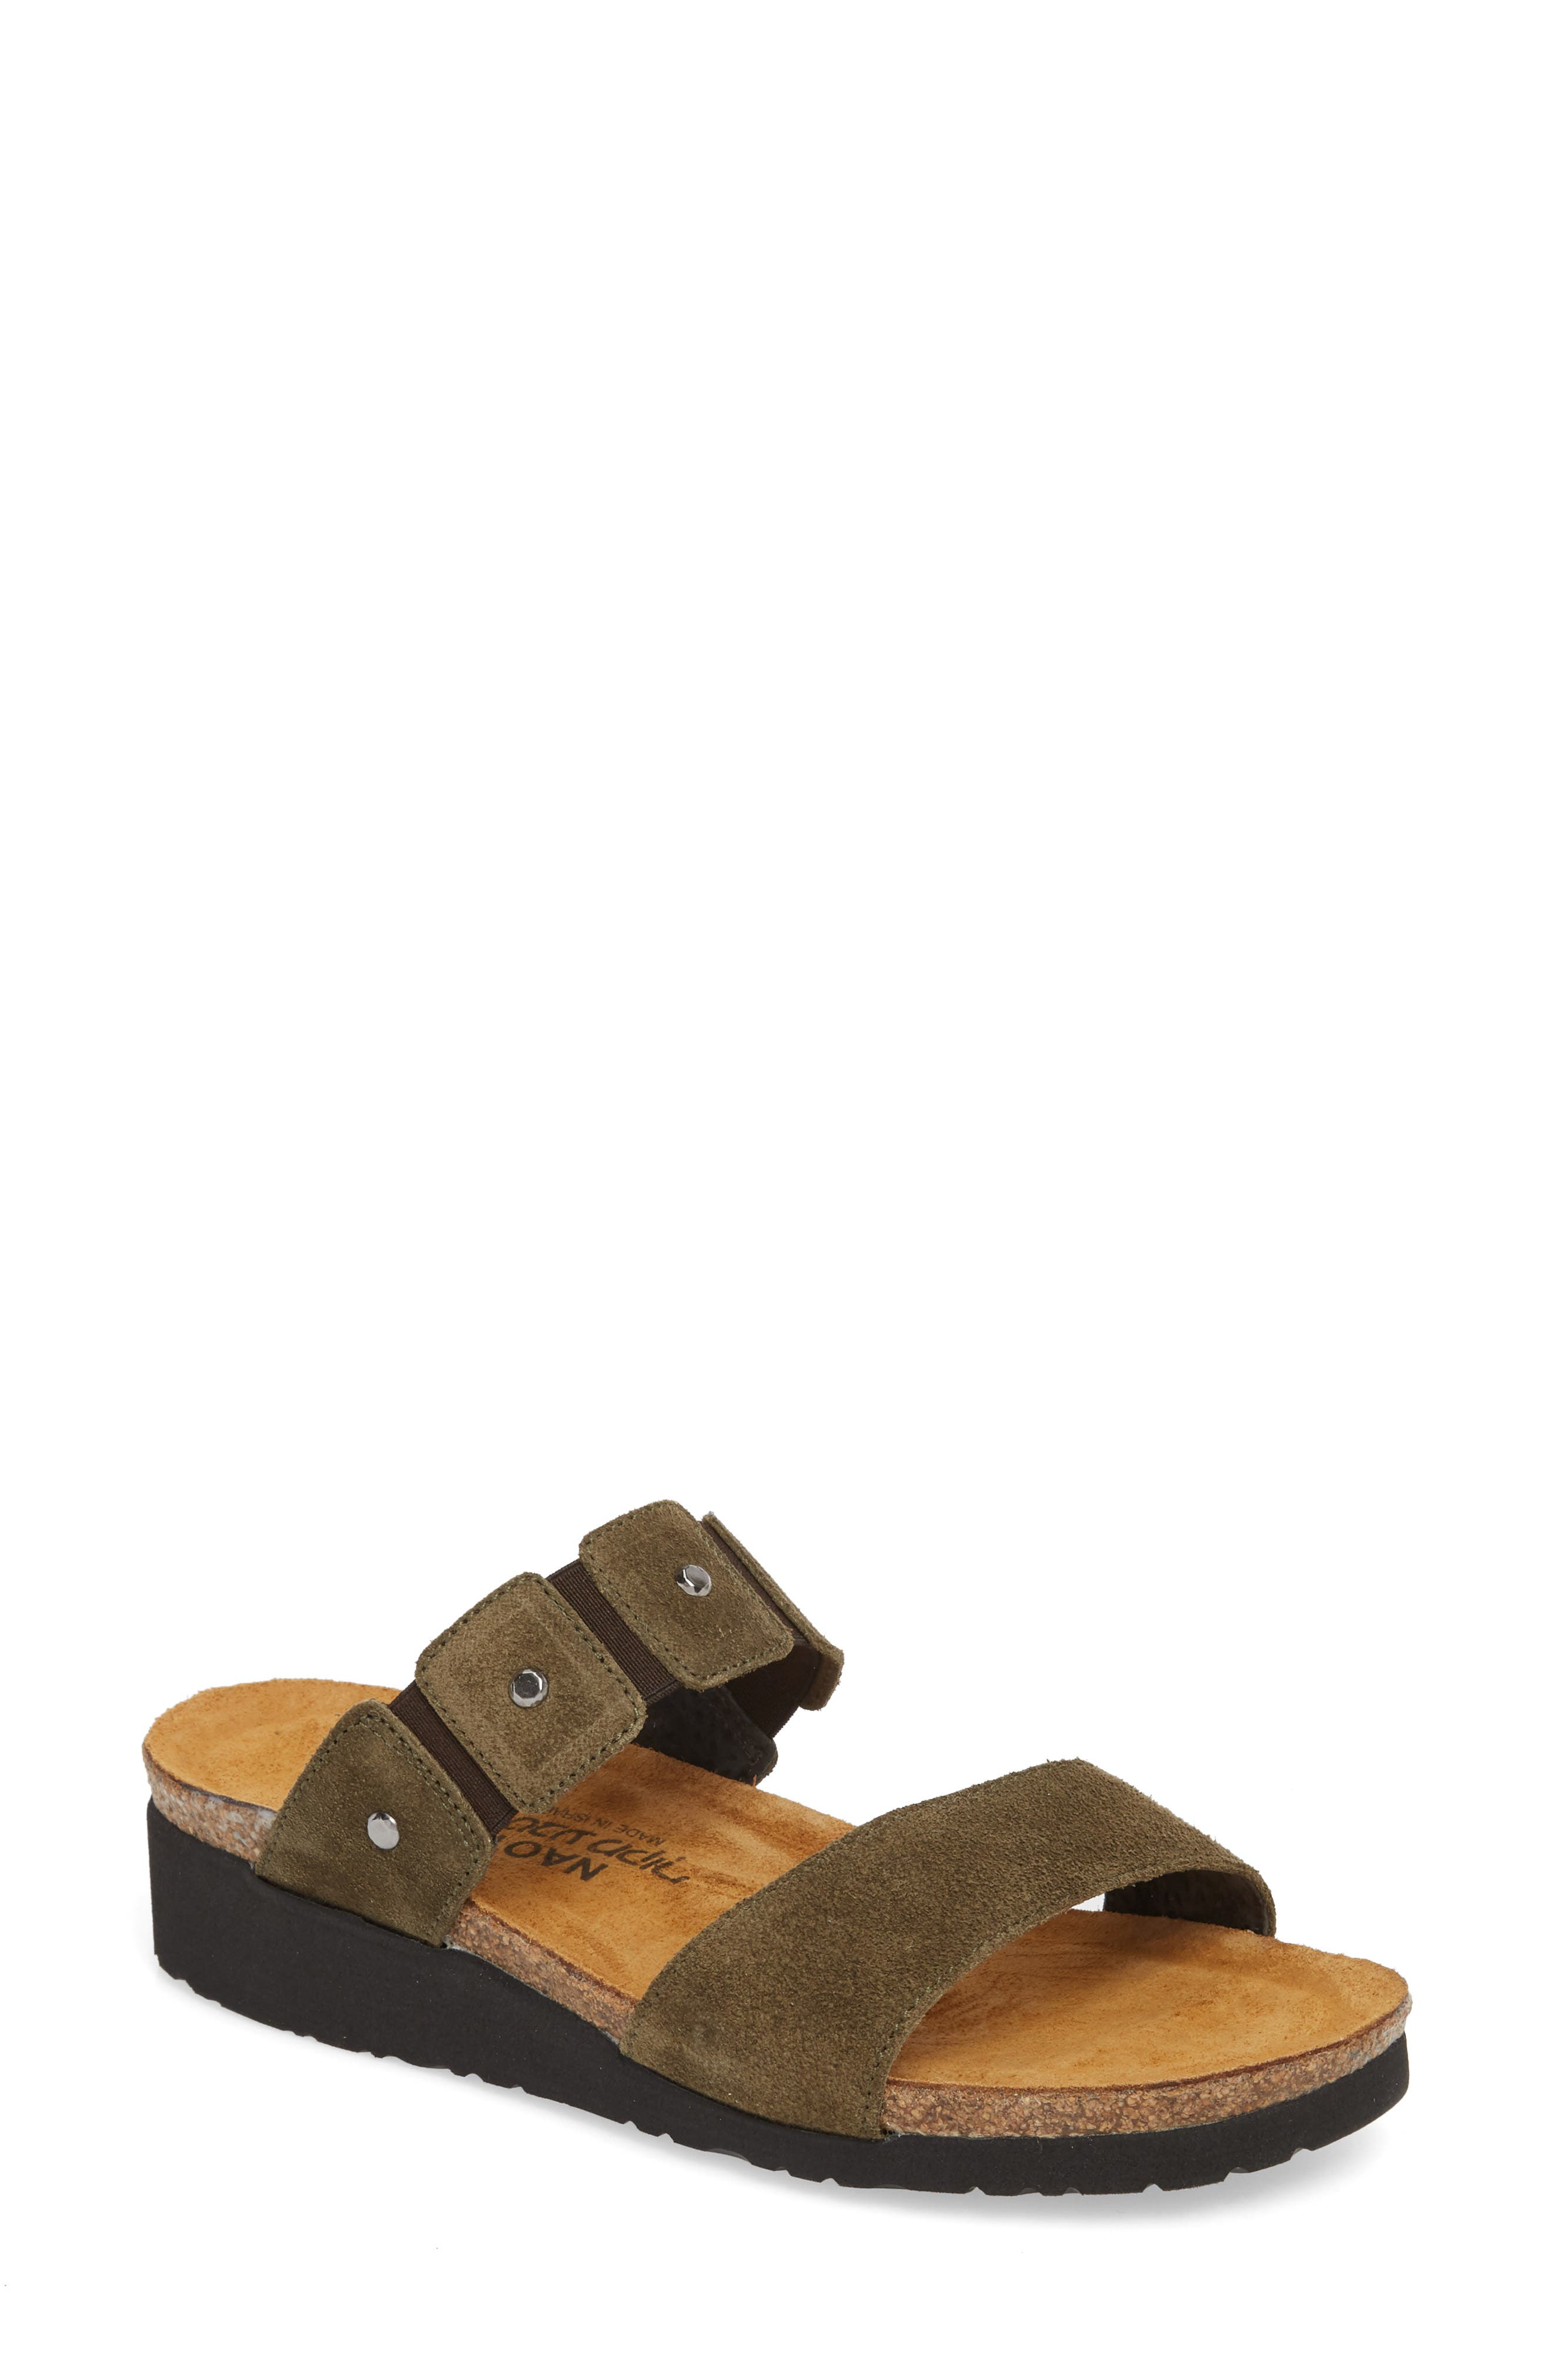 Scarlett Slide Sandal,                             Main thumbnail 1, color,                             Oily Olive Suede